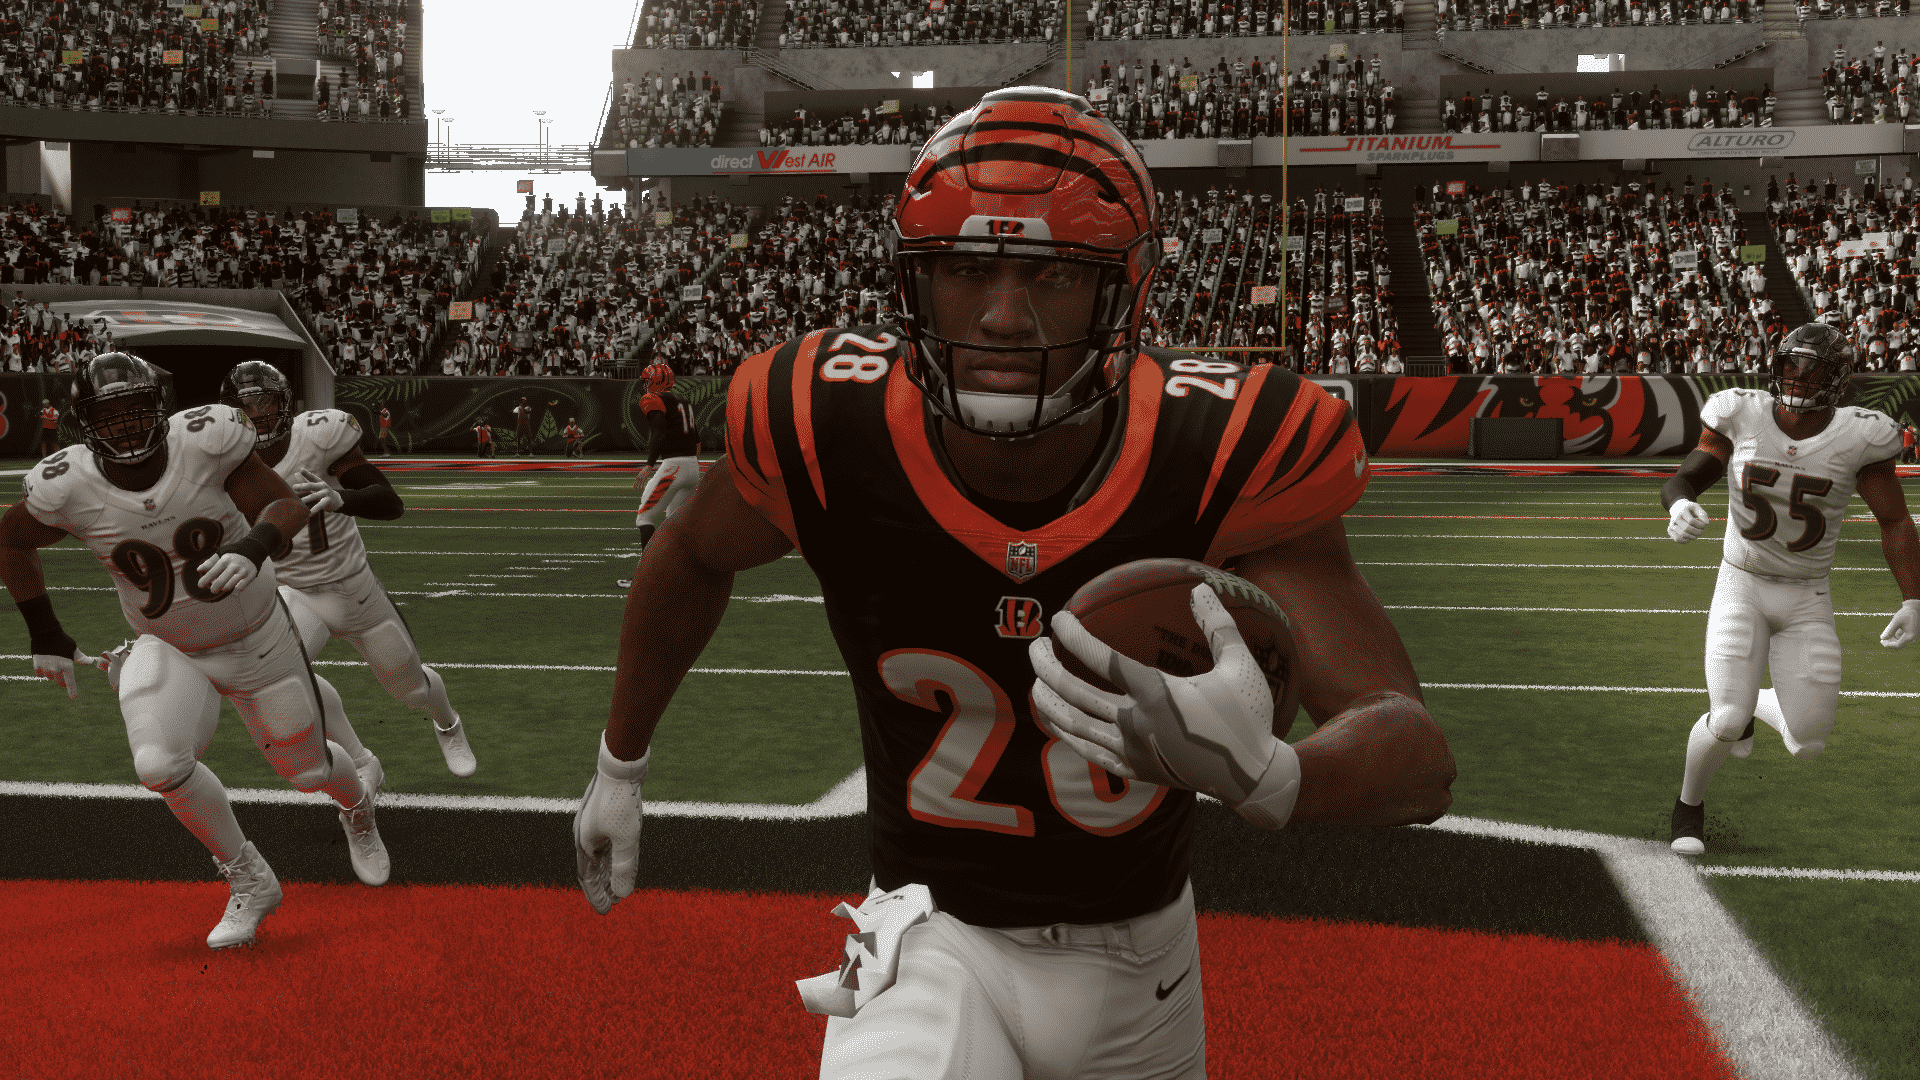 Madden NFL 19 Stands Above All According To August 2018 NPD